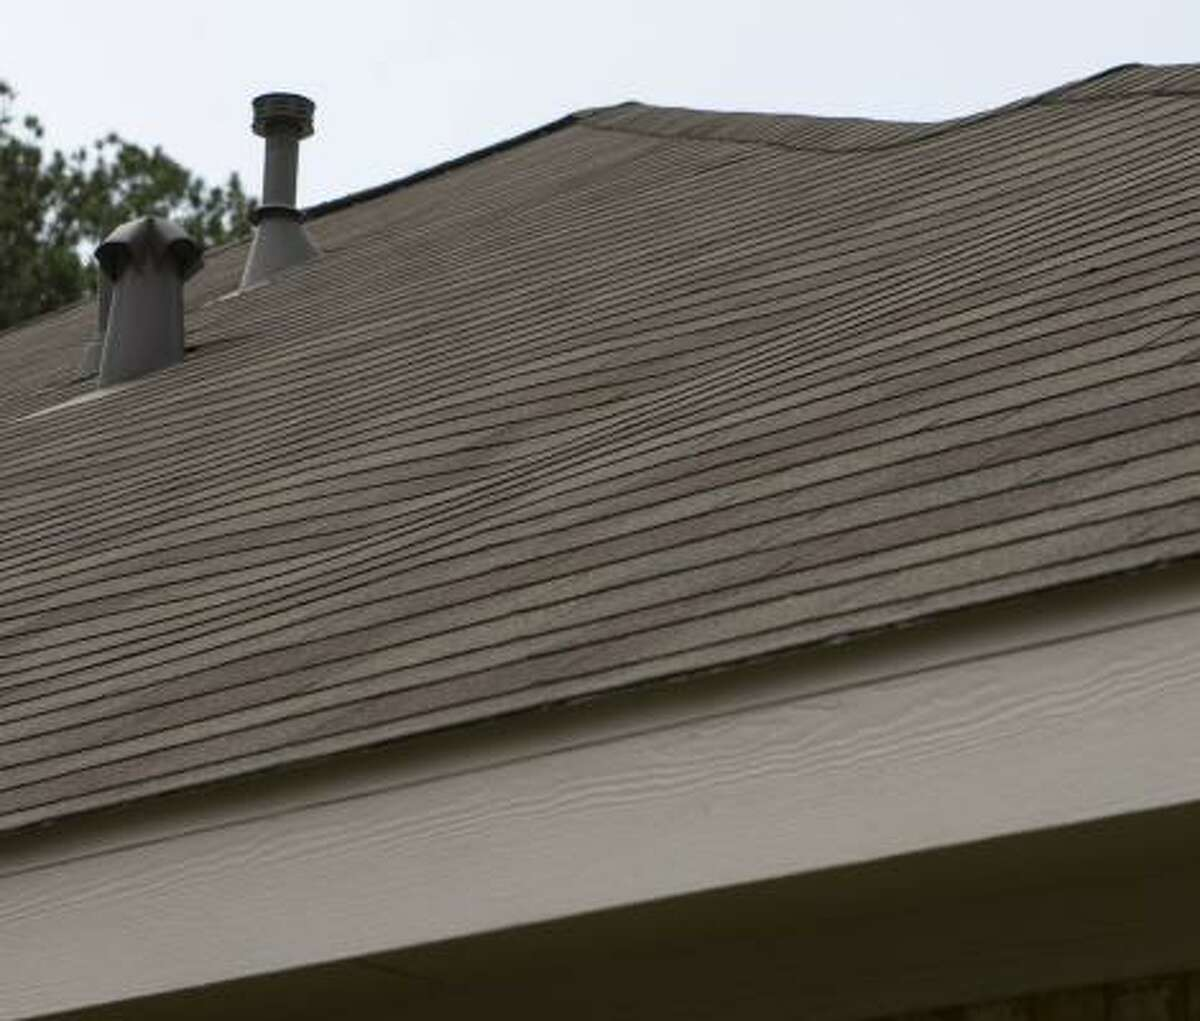 Bennett's roof shows buckling in several places.